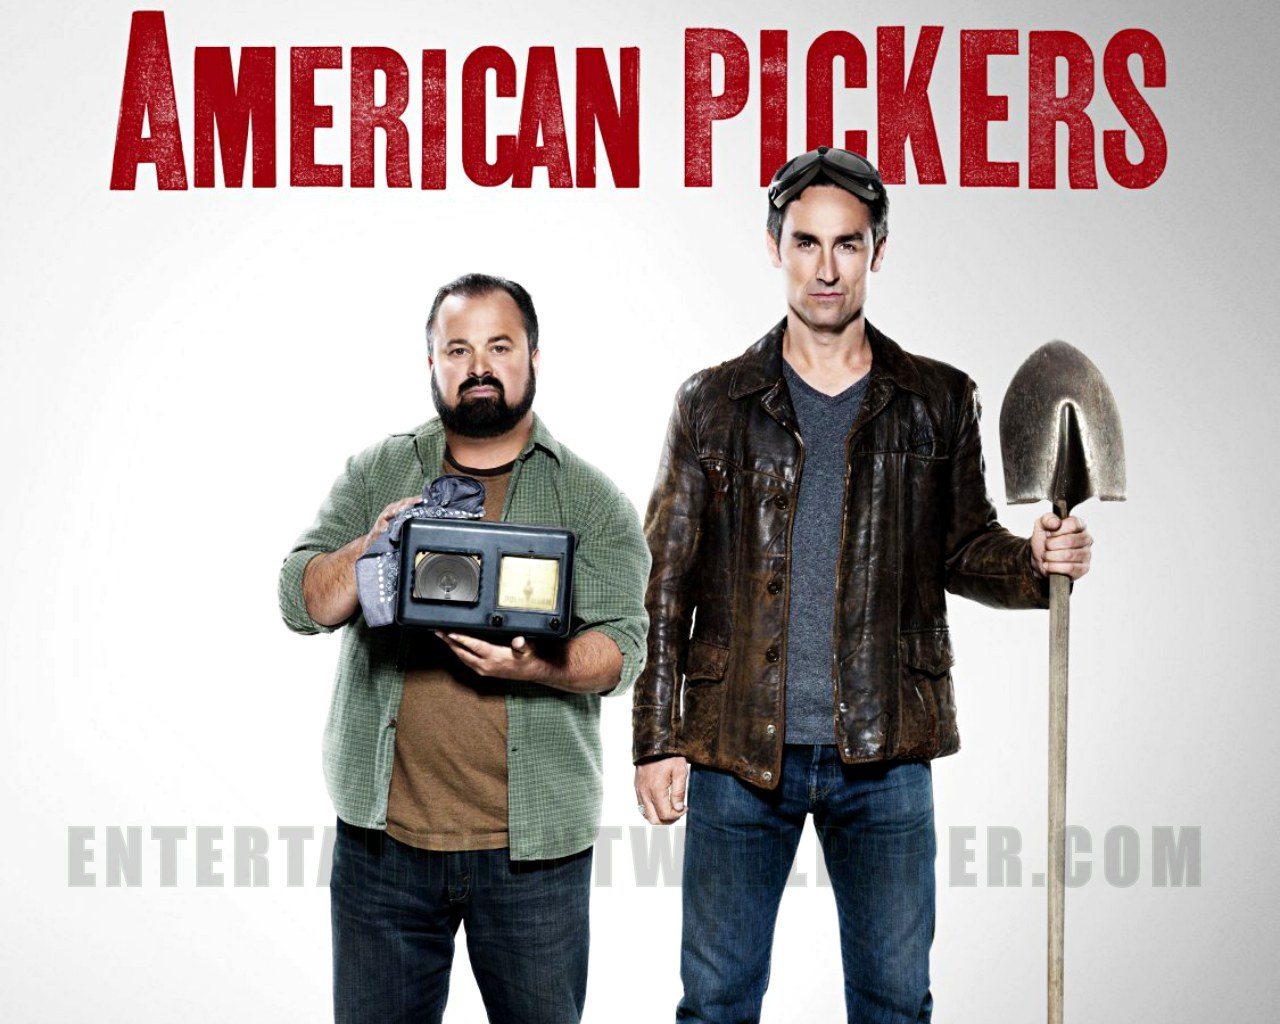 business branding lessons from the show american pickers marketing. Black Bedroom Furniture Sets. Home Design Ideas